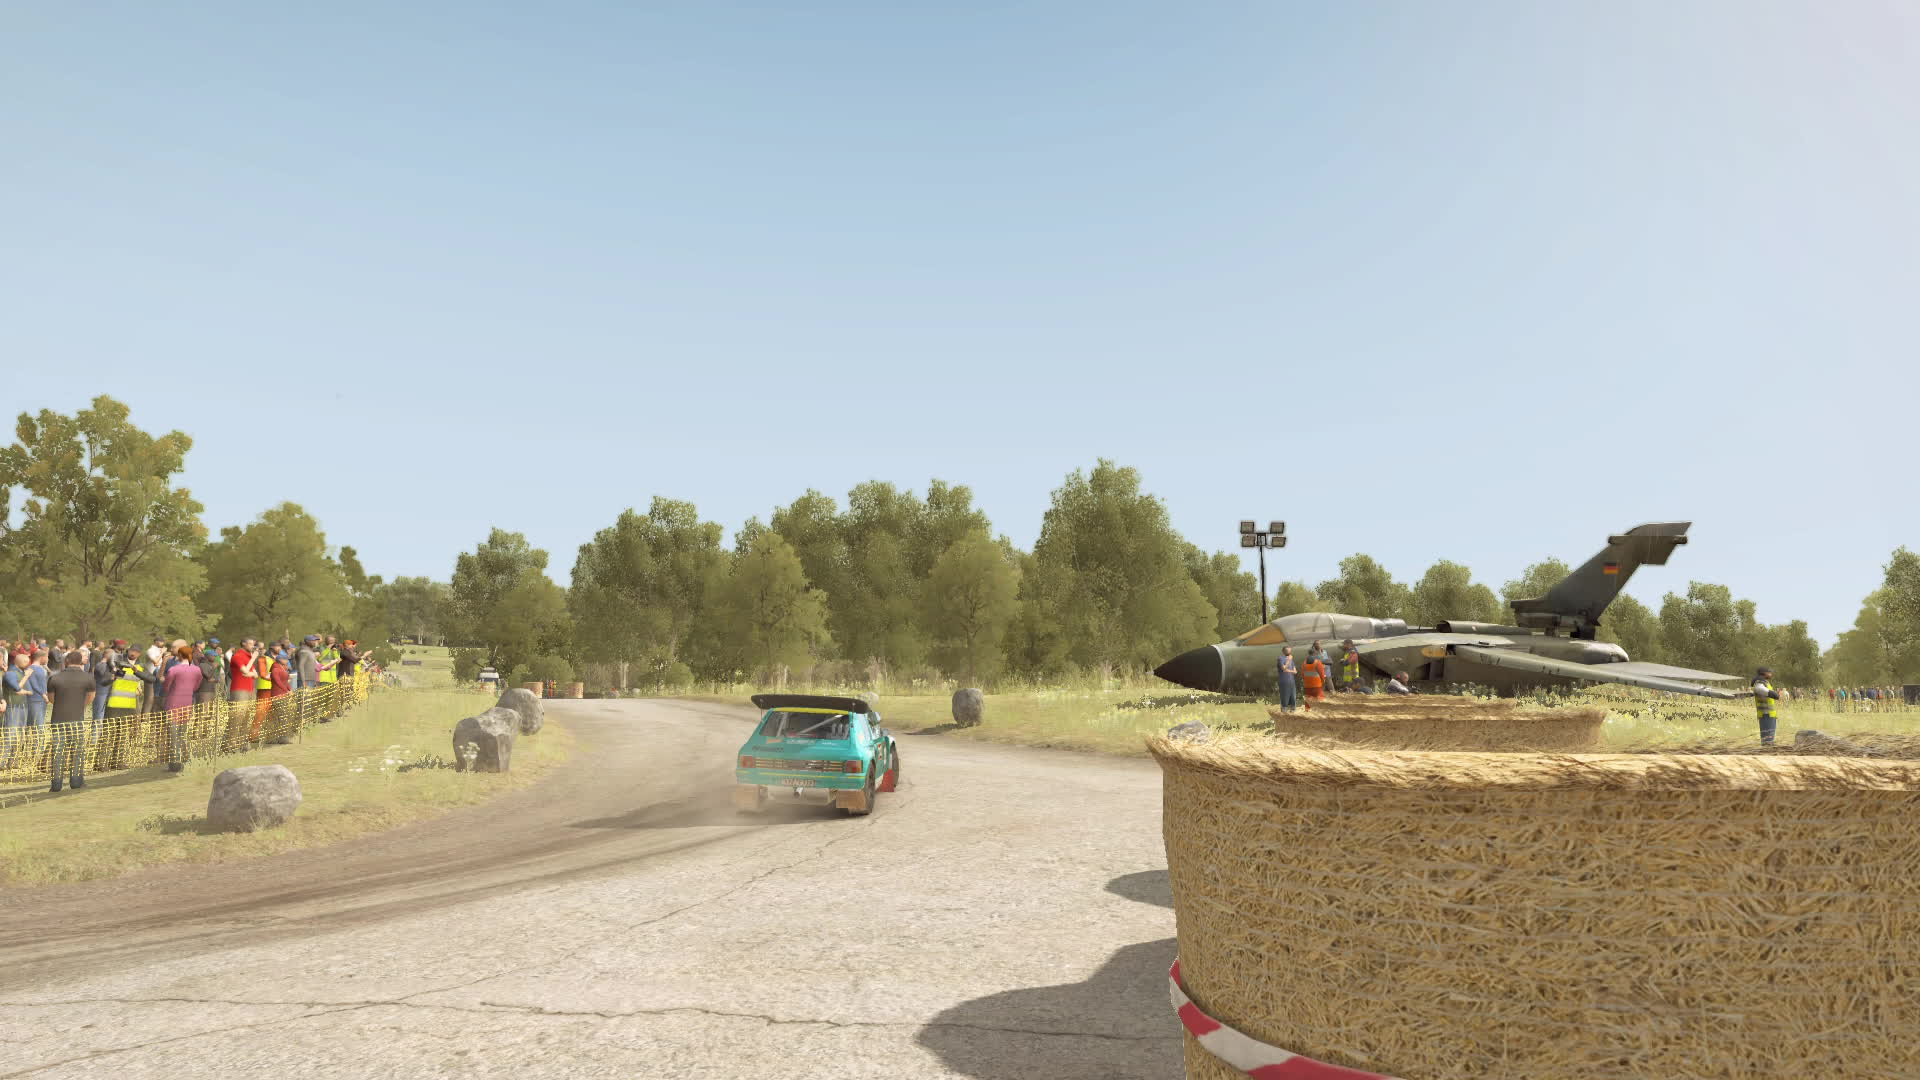 dirtgame, Ring around the rosie GIFs